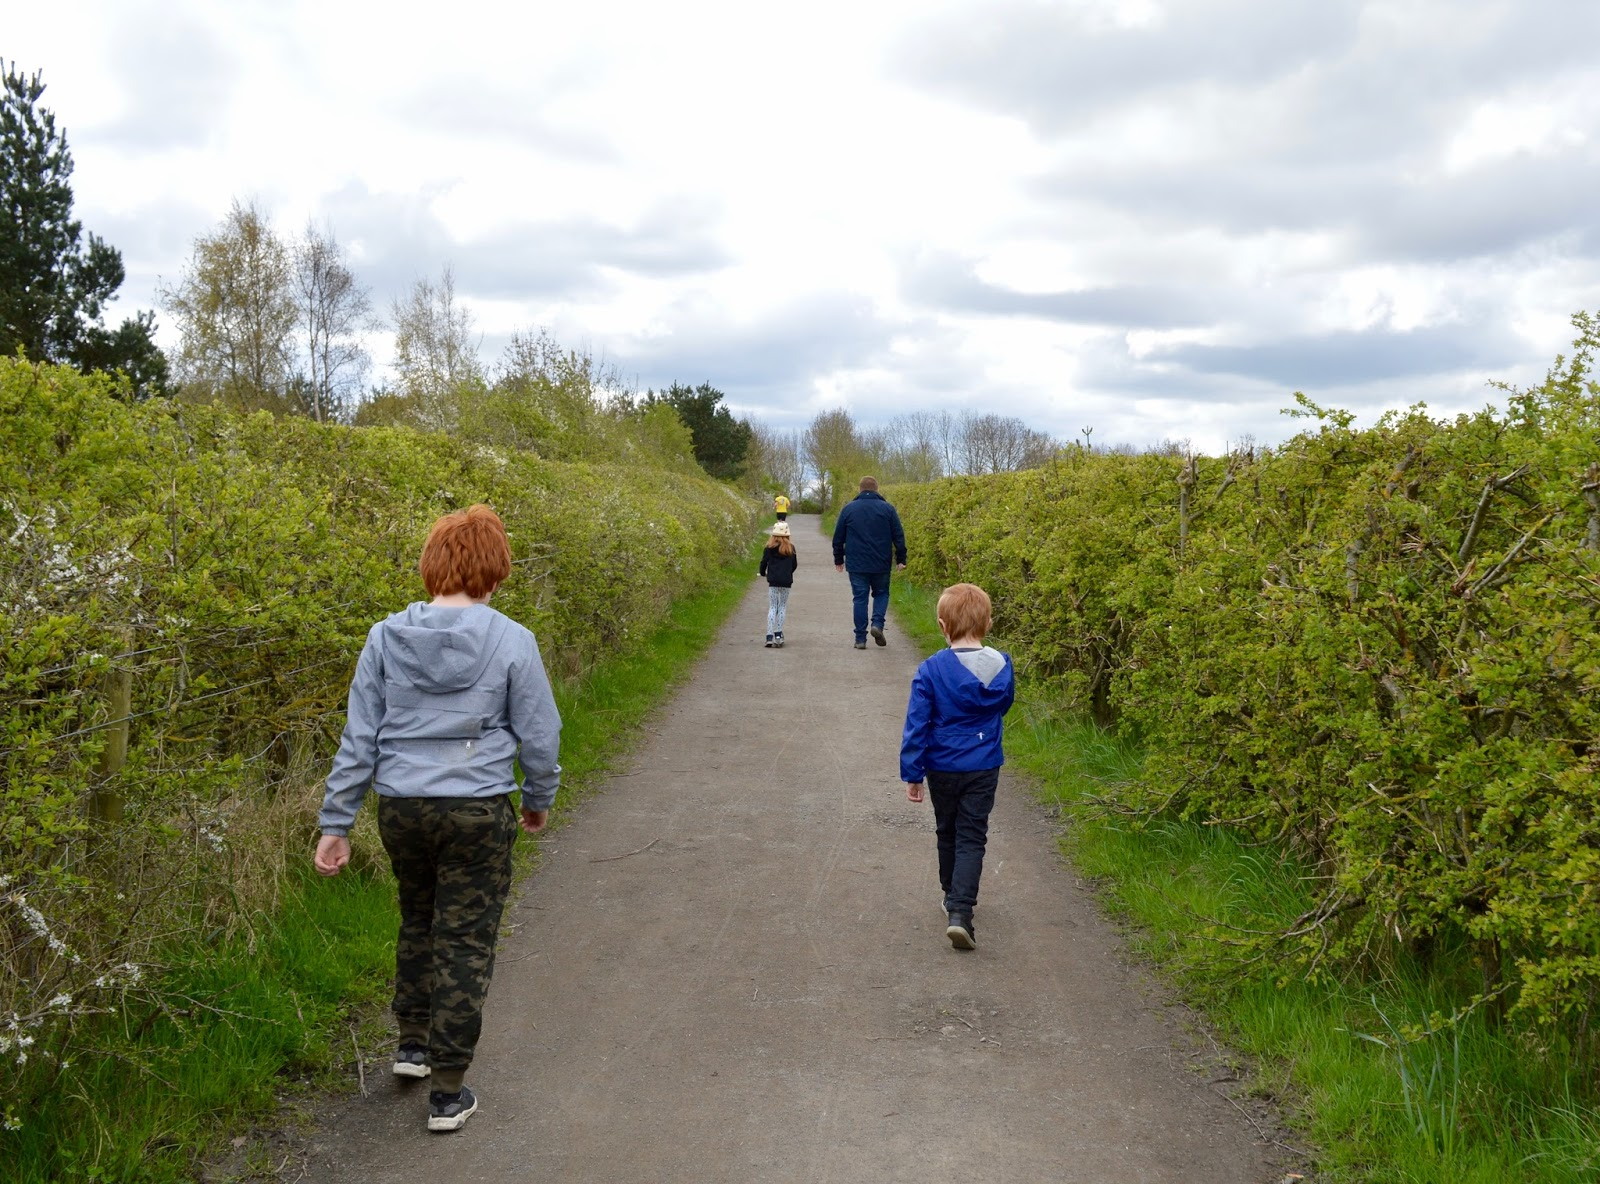 50+ Family Walks & Trails to try across North East England - Rising Sun Country Park